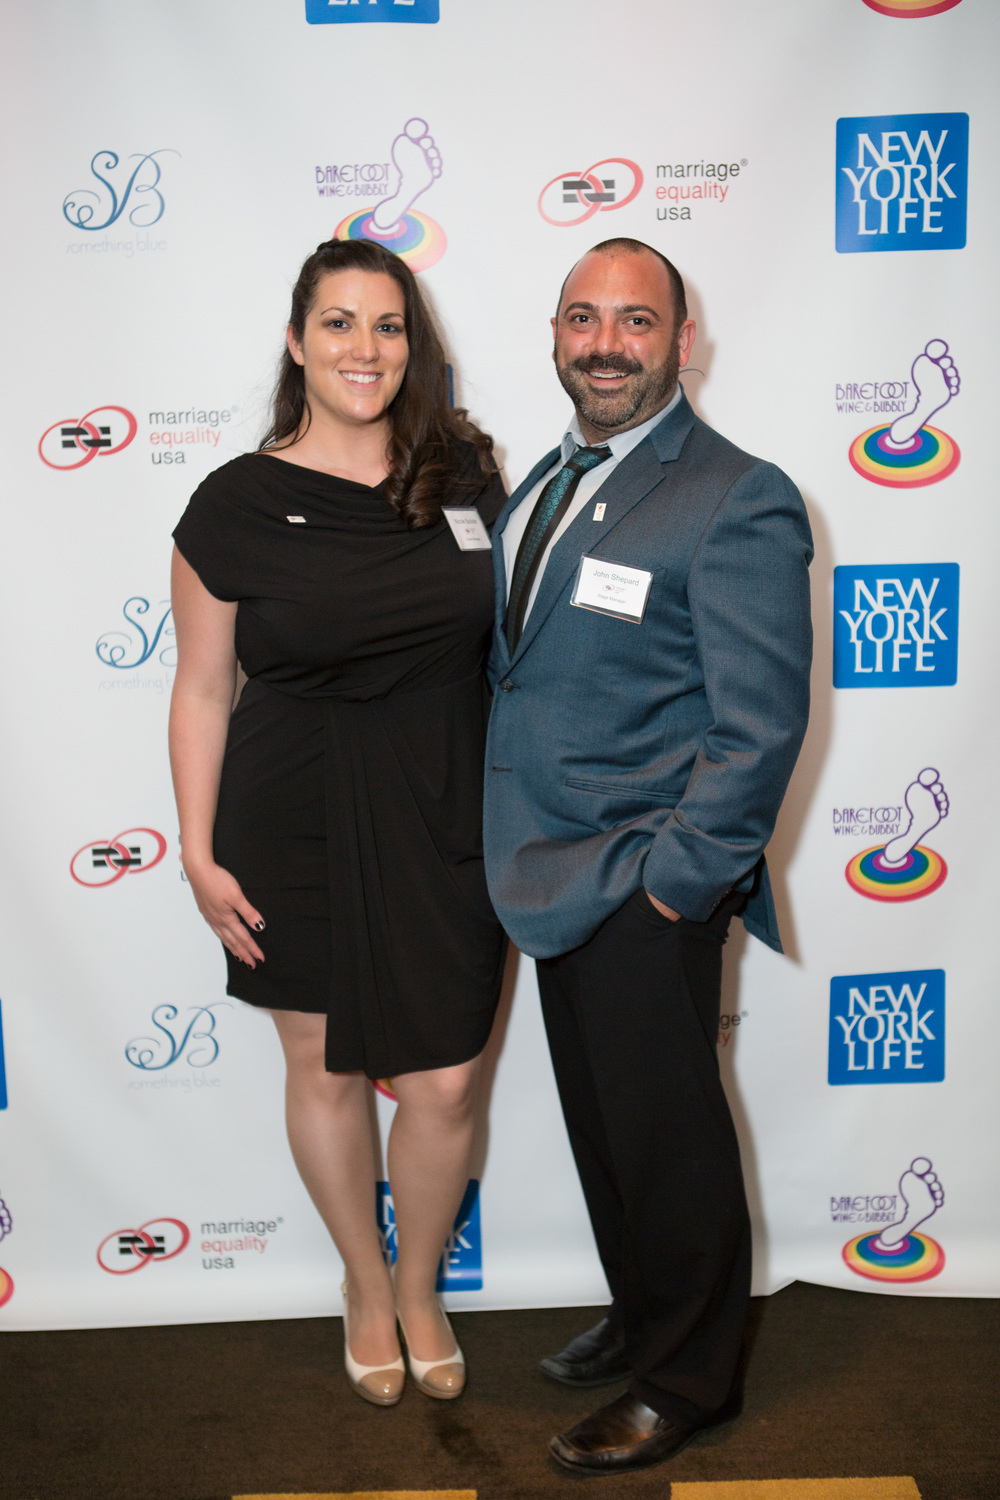 Nicole Batiste and John Shepard at the Marriage Equality Gala in New York, May 19th, 2014.  Photo by www.stevenrosenphotography.com